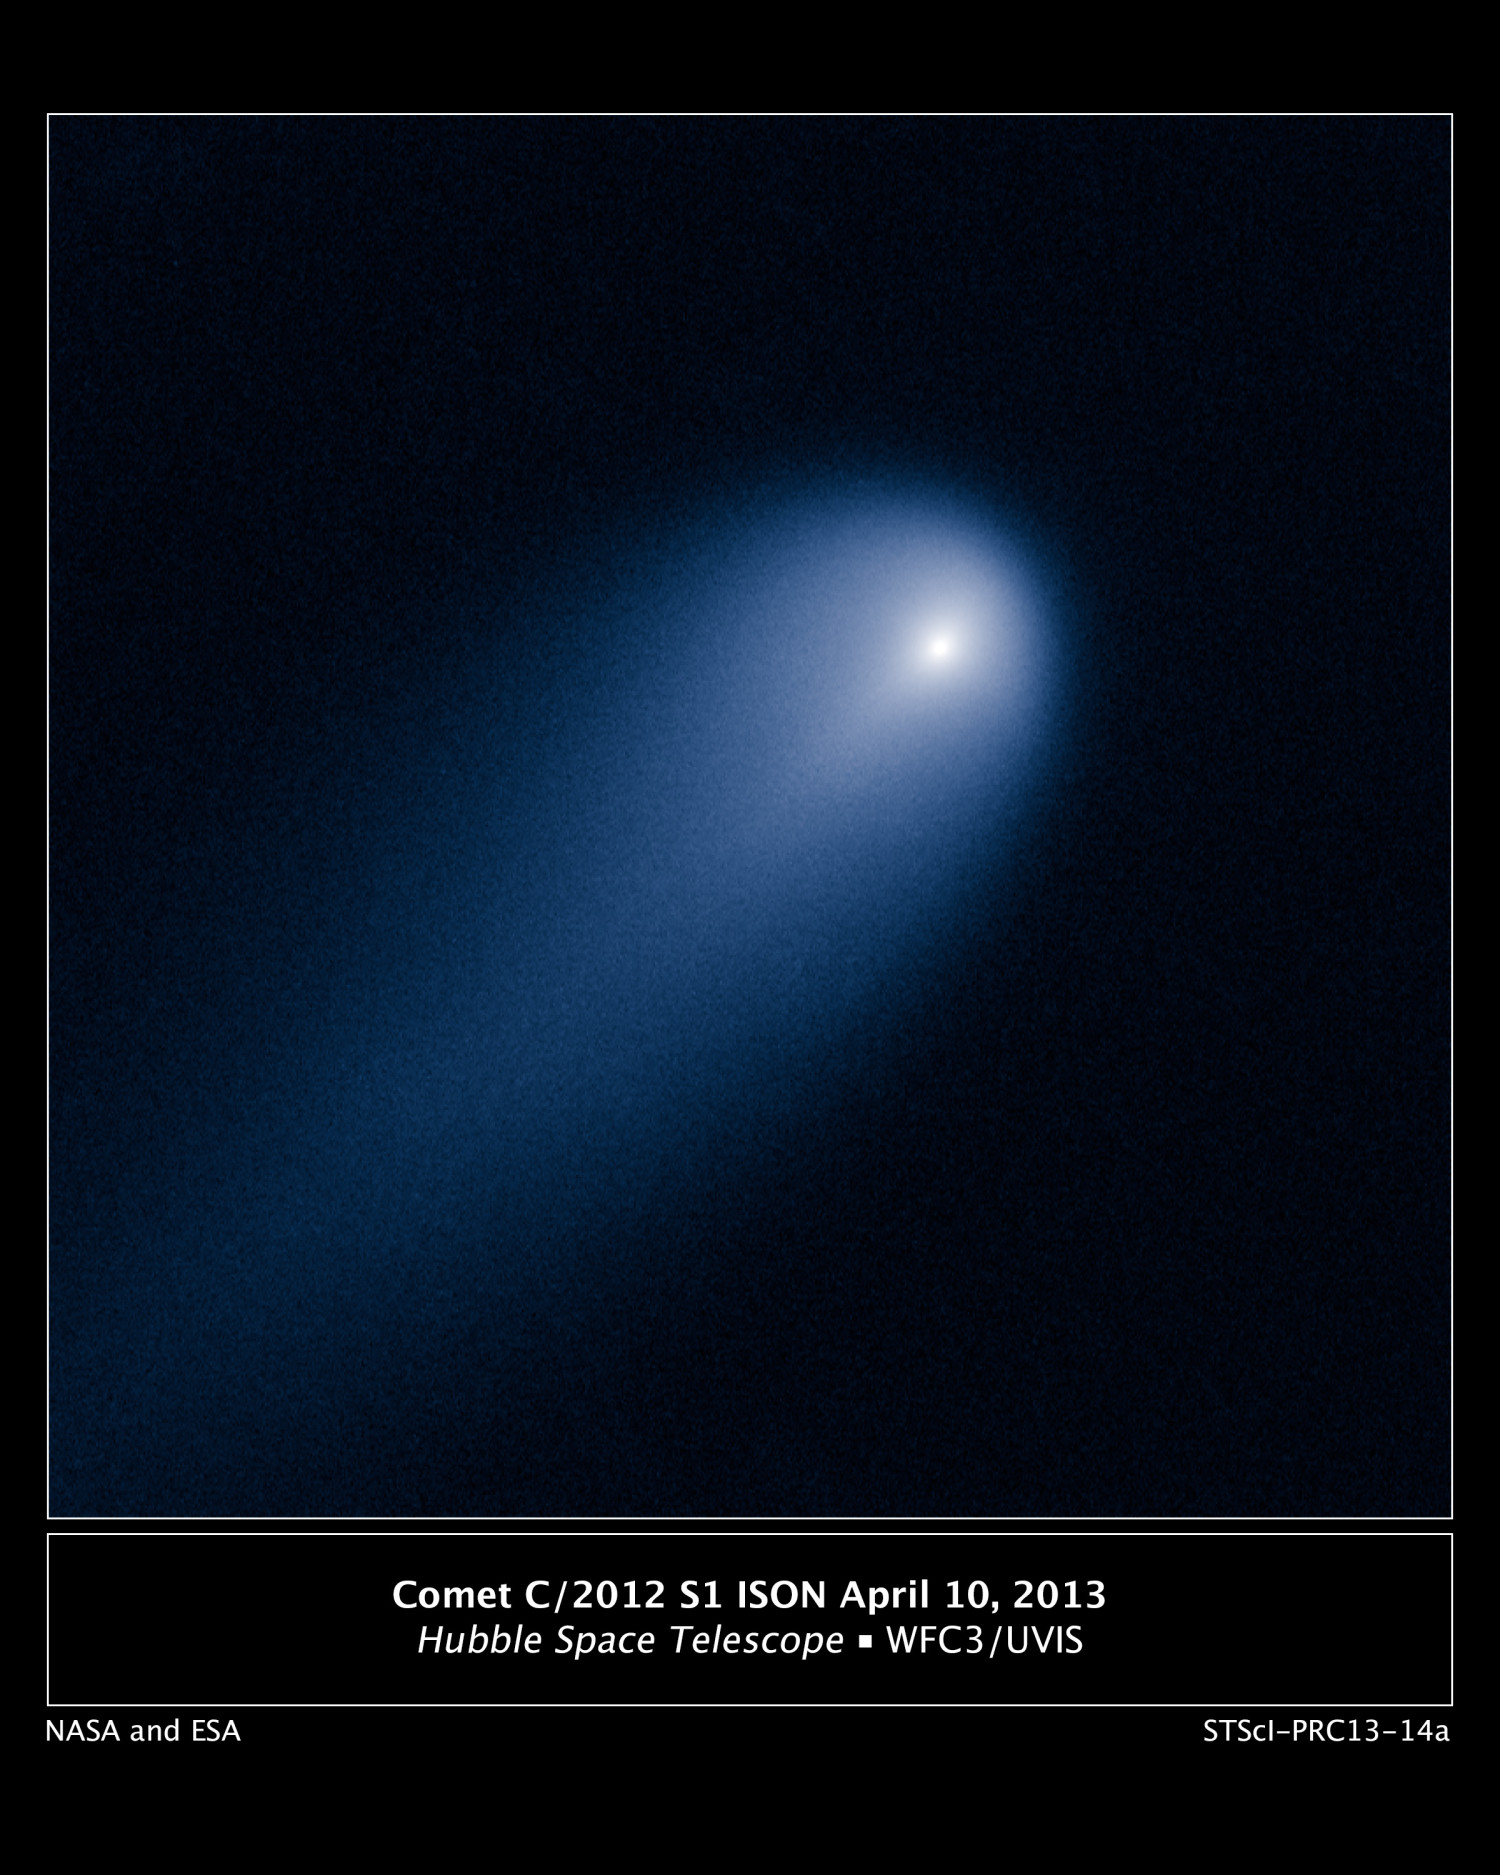 Comet C/ISON was imaged with the Hubble Space telescope on April 10 using the Wide Field Camera 3, when the comet was 394 million miles from Earth.   View larger.  Image via NASA, ESA, J.-Y. Li (Planetary Science Institute), and the Hubble Comet ISON Imaging Science Team